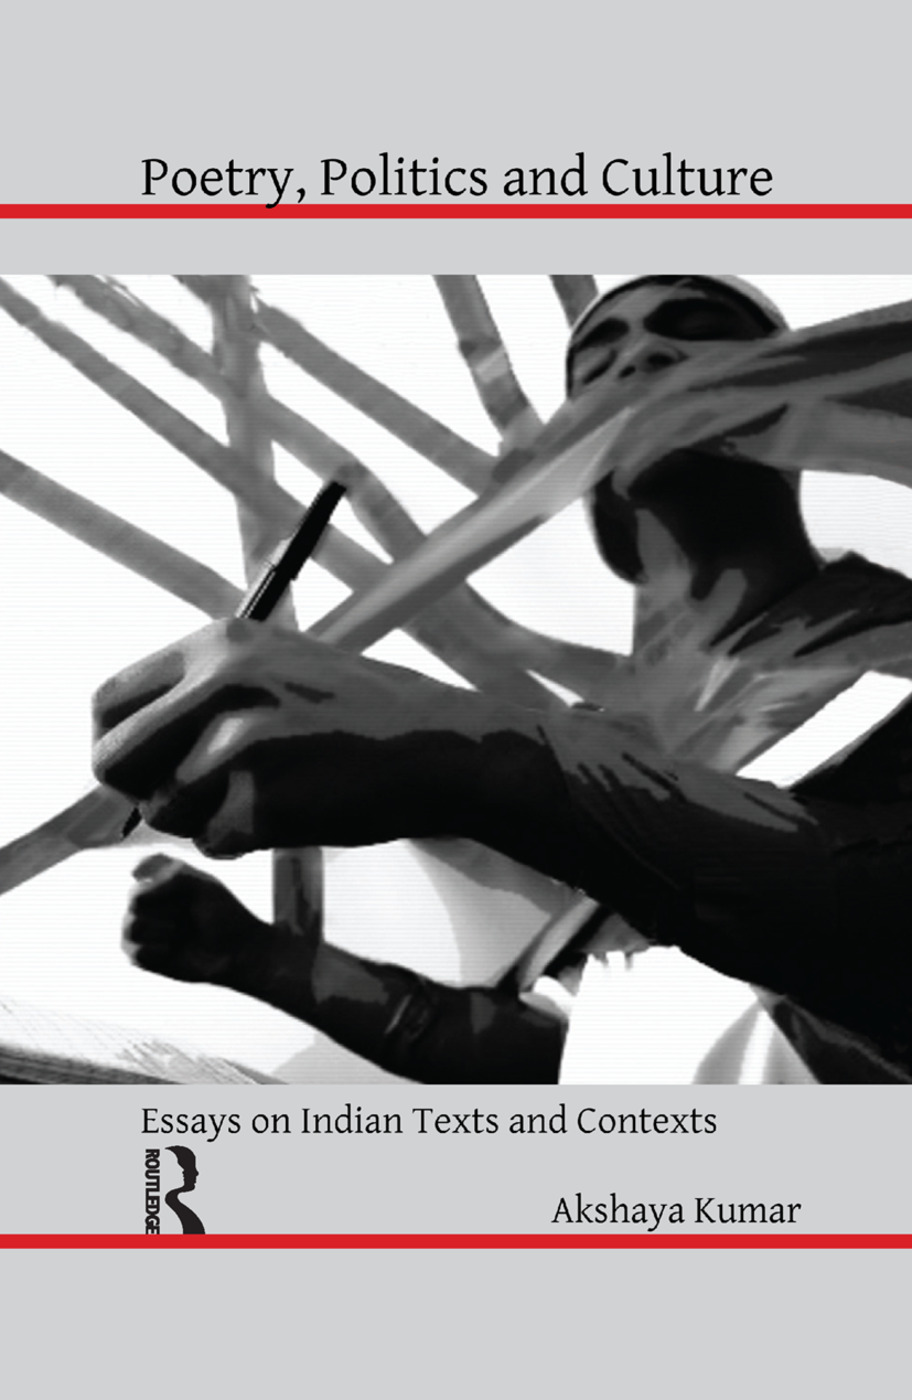 Poetry, Politics and Culture: Essays on Indian Texts and Contexts, 1st Edition (Paperback) book cover